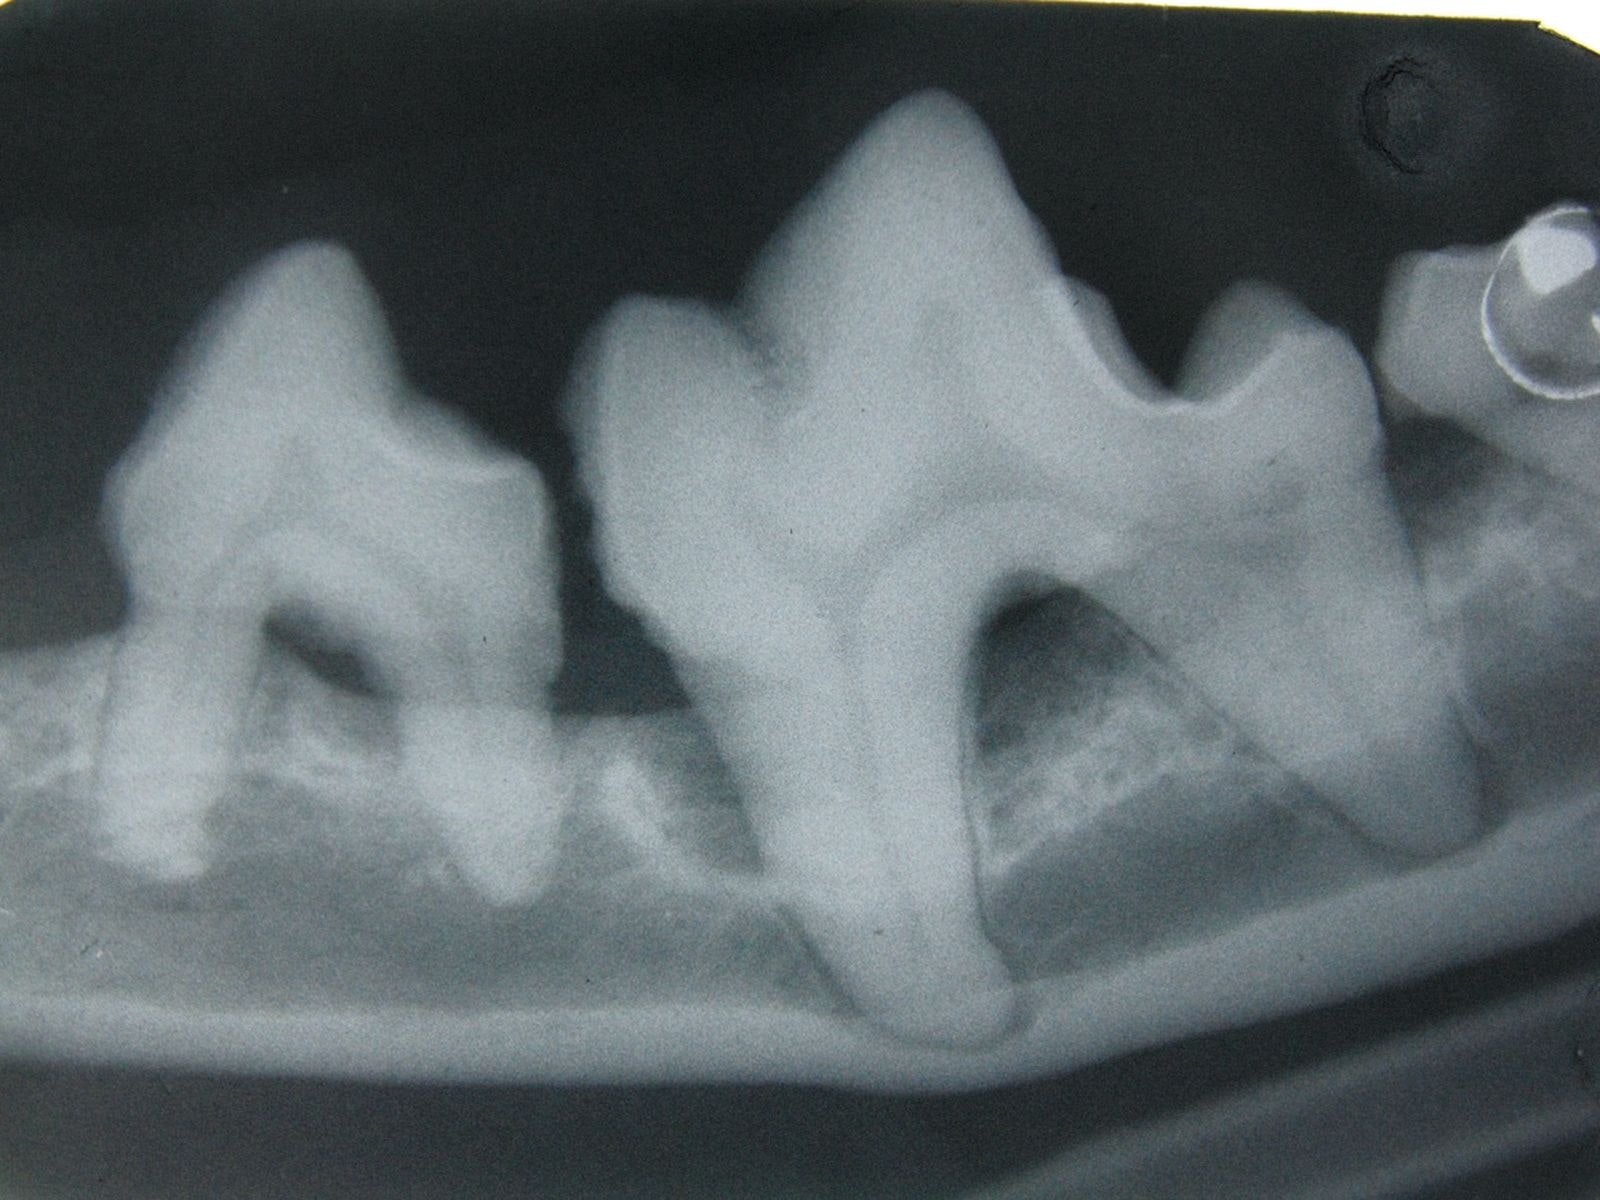 . Intra-oral radiographs are essential when assessing dogs and cats with possible periodontitis. Note the loss of alveolar bone around the affected teeth.